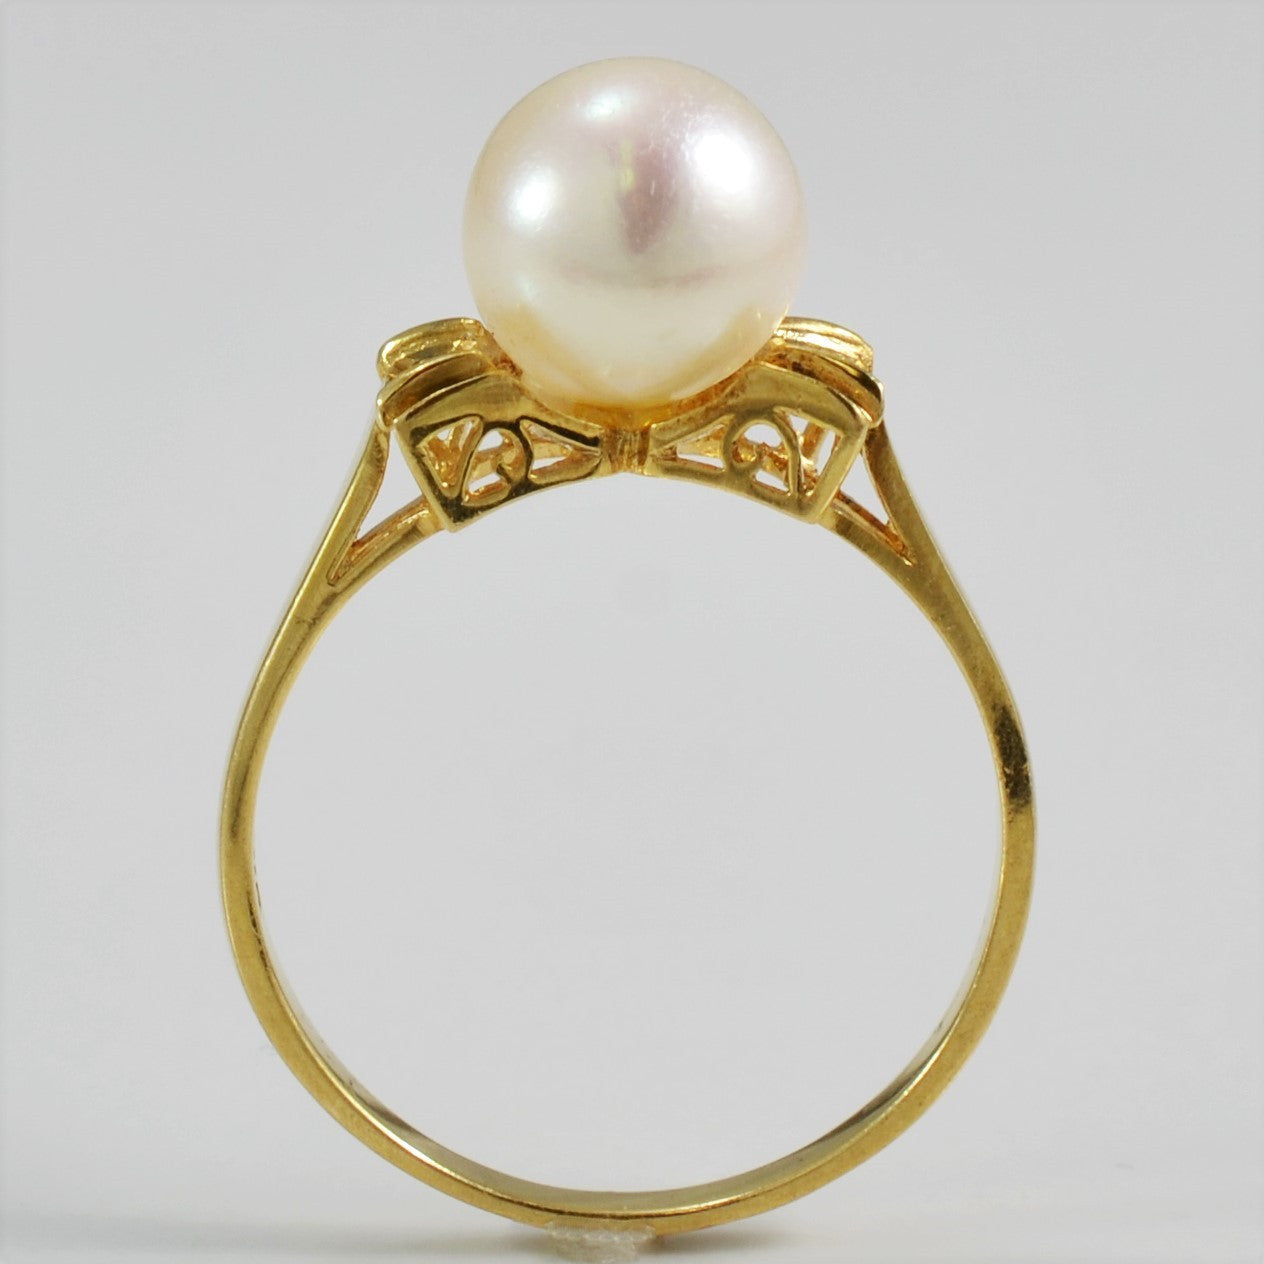 Pearl & Diamond Filigree Detailed Ring | 0.02 ctw, SZ 6.25 |